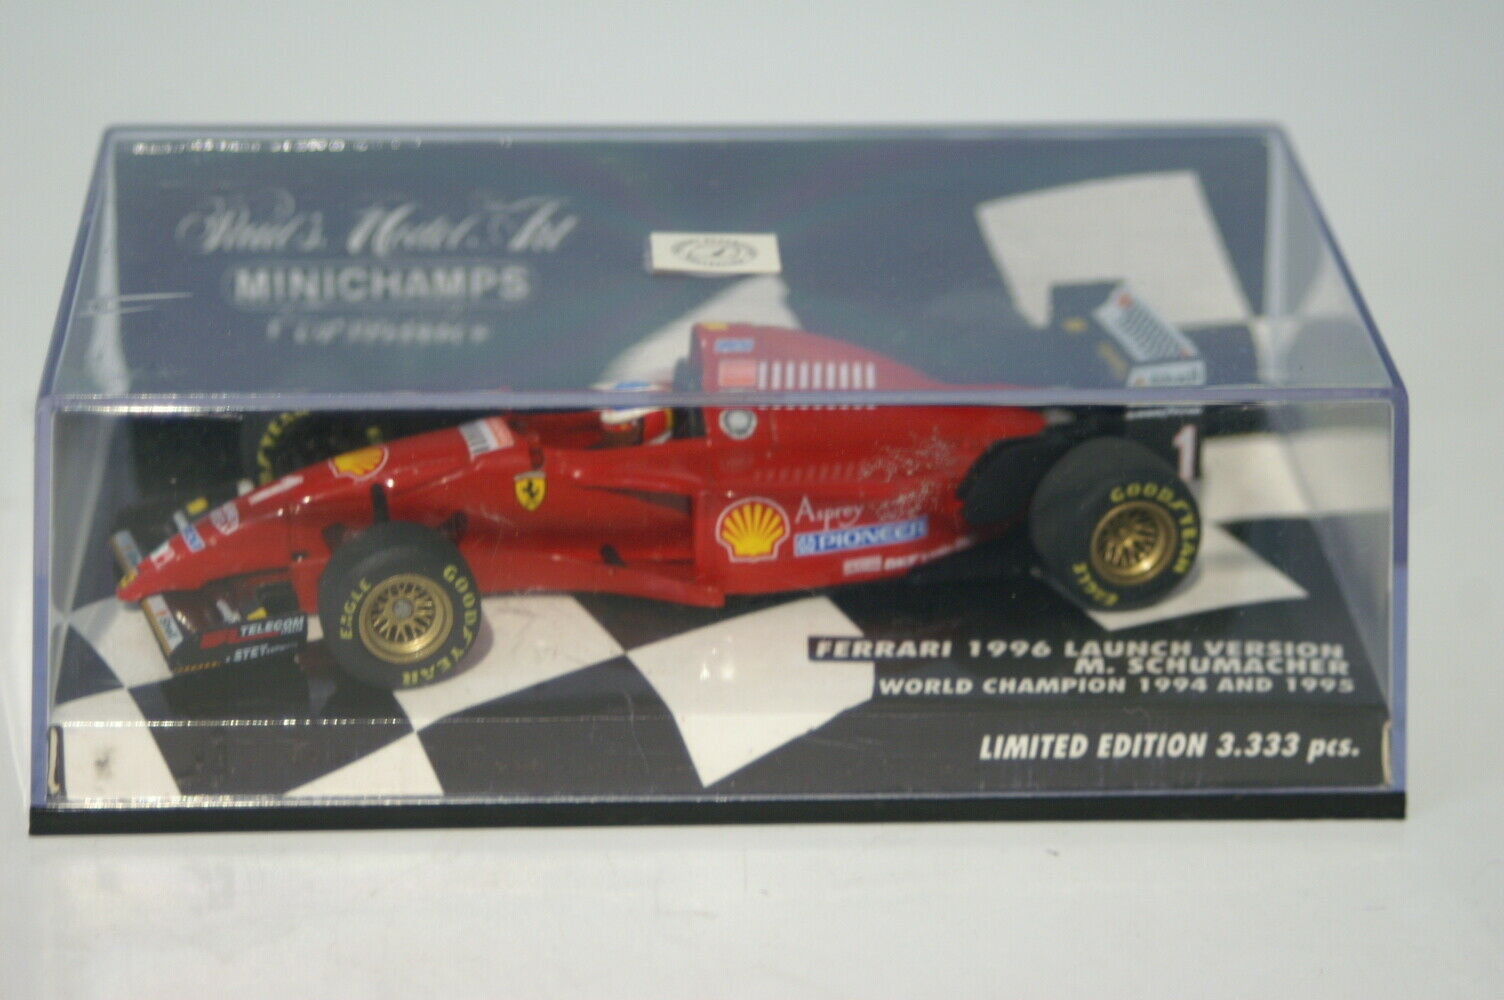 MINICHAMPS FERRARI 1996 lancement M. SCHUMACHER world champion 510 964391 1 43 Di...